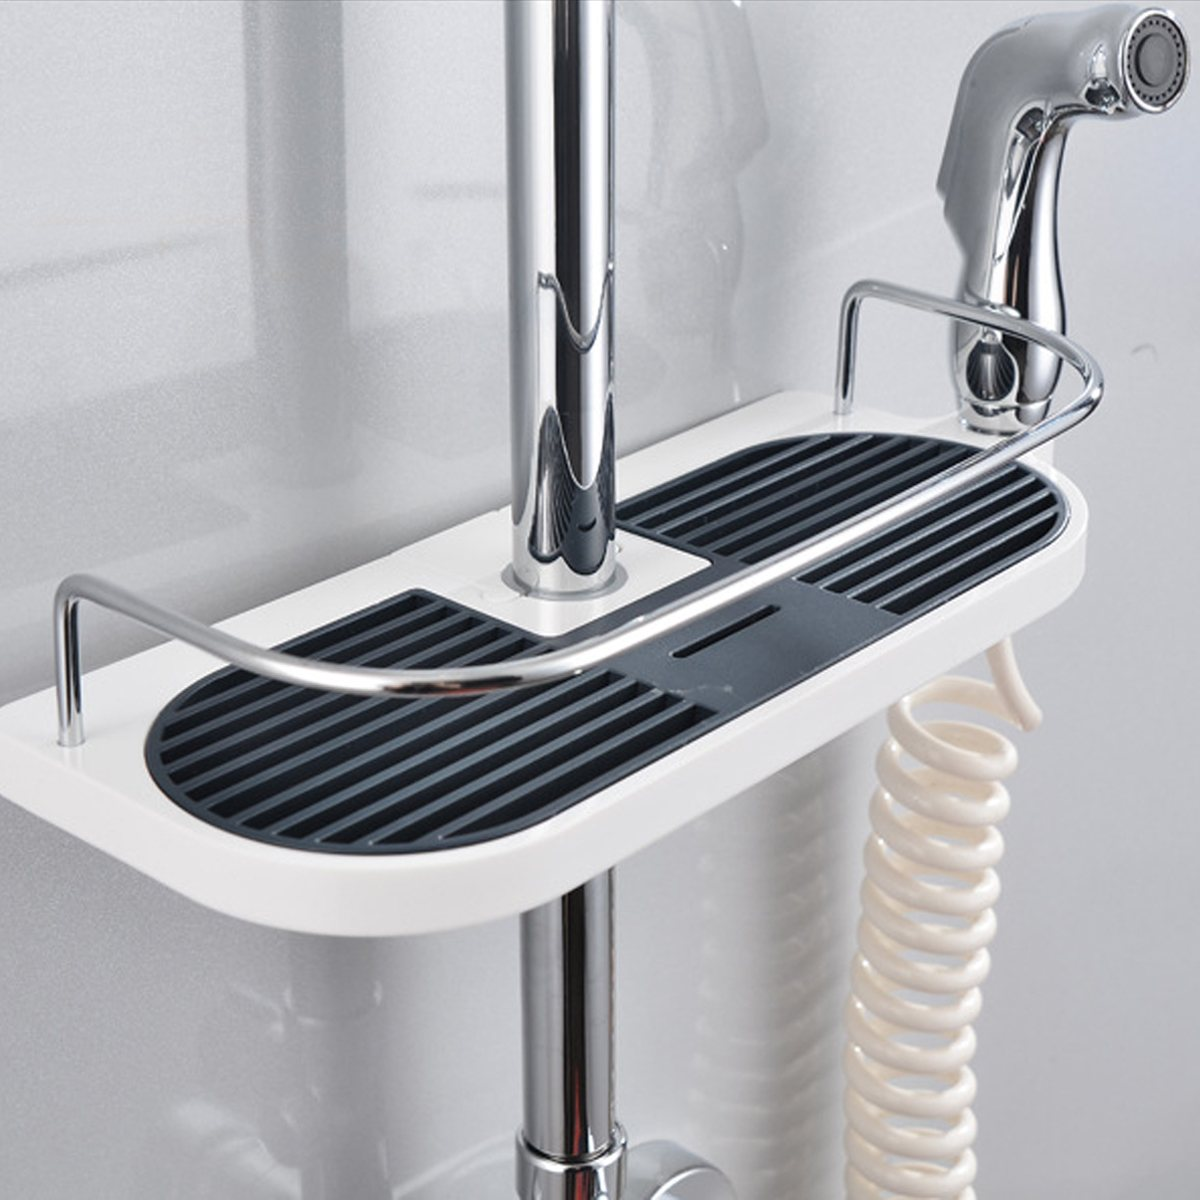 Rectangle/Round Bathroom Shelves Shower Storage Rack Holder Shampoo Tray Bathroom Shelves Single Tier Shower Head Holder